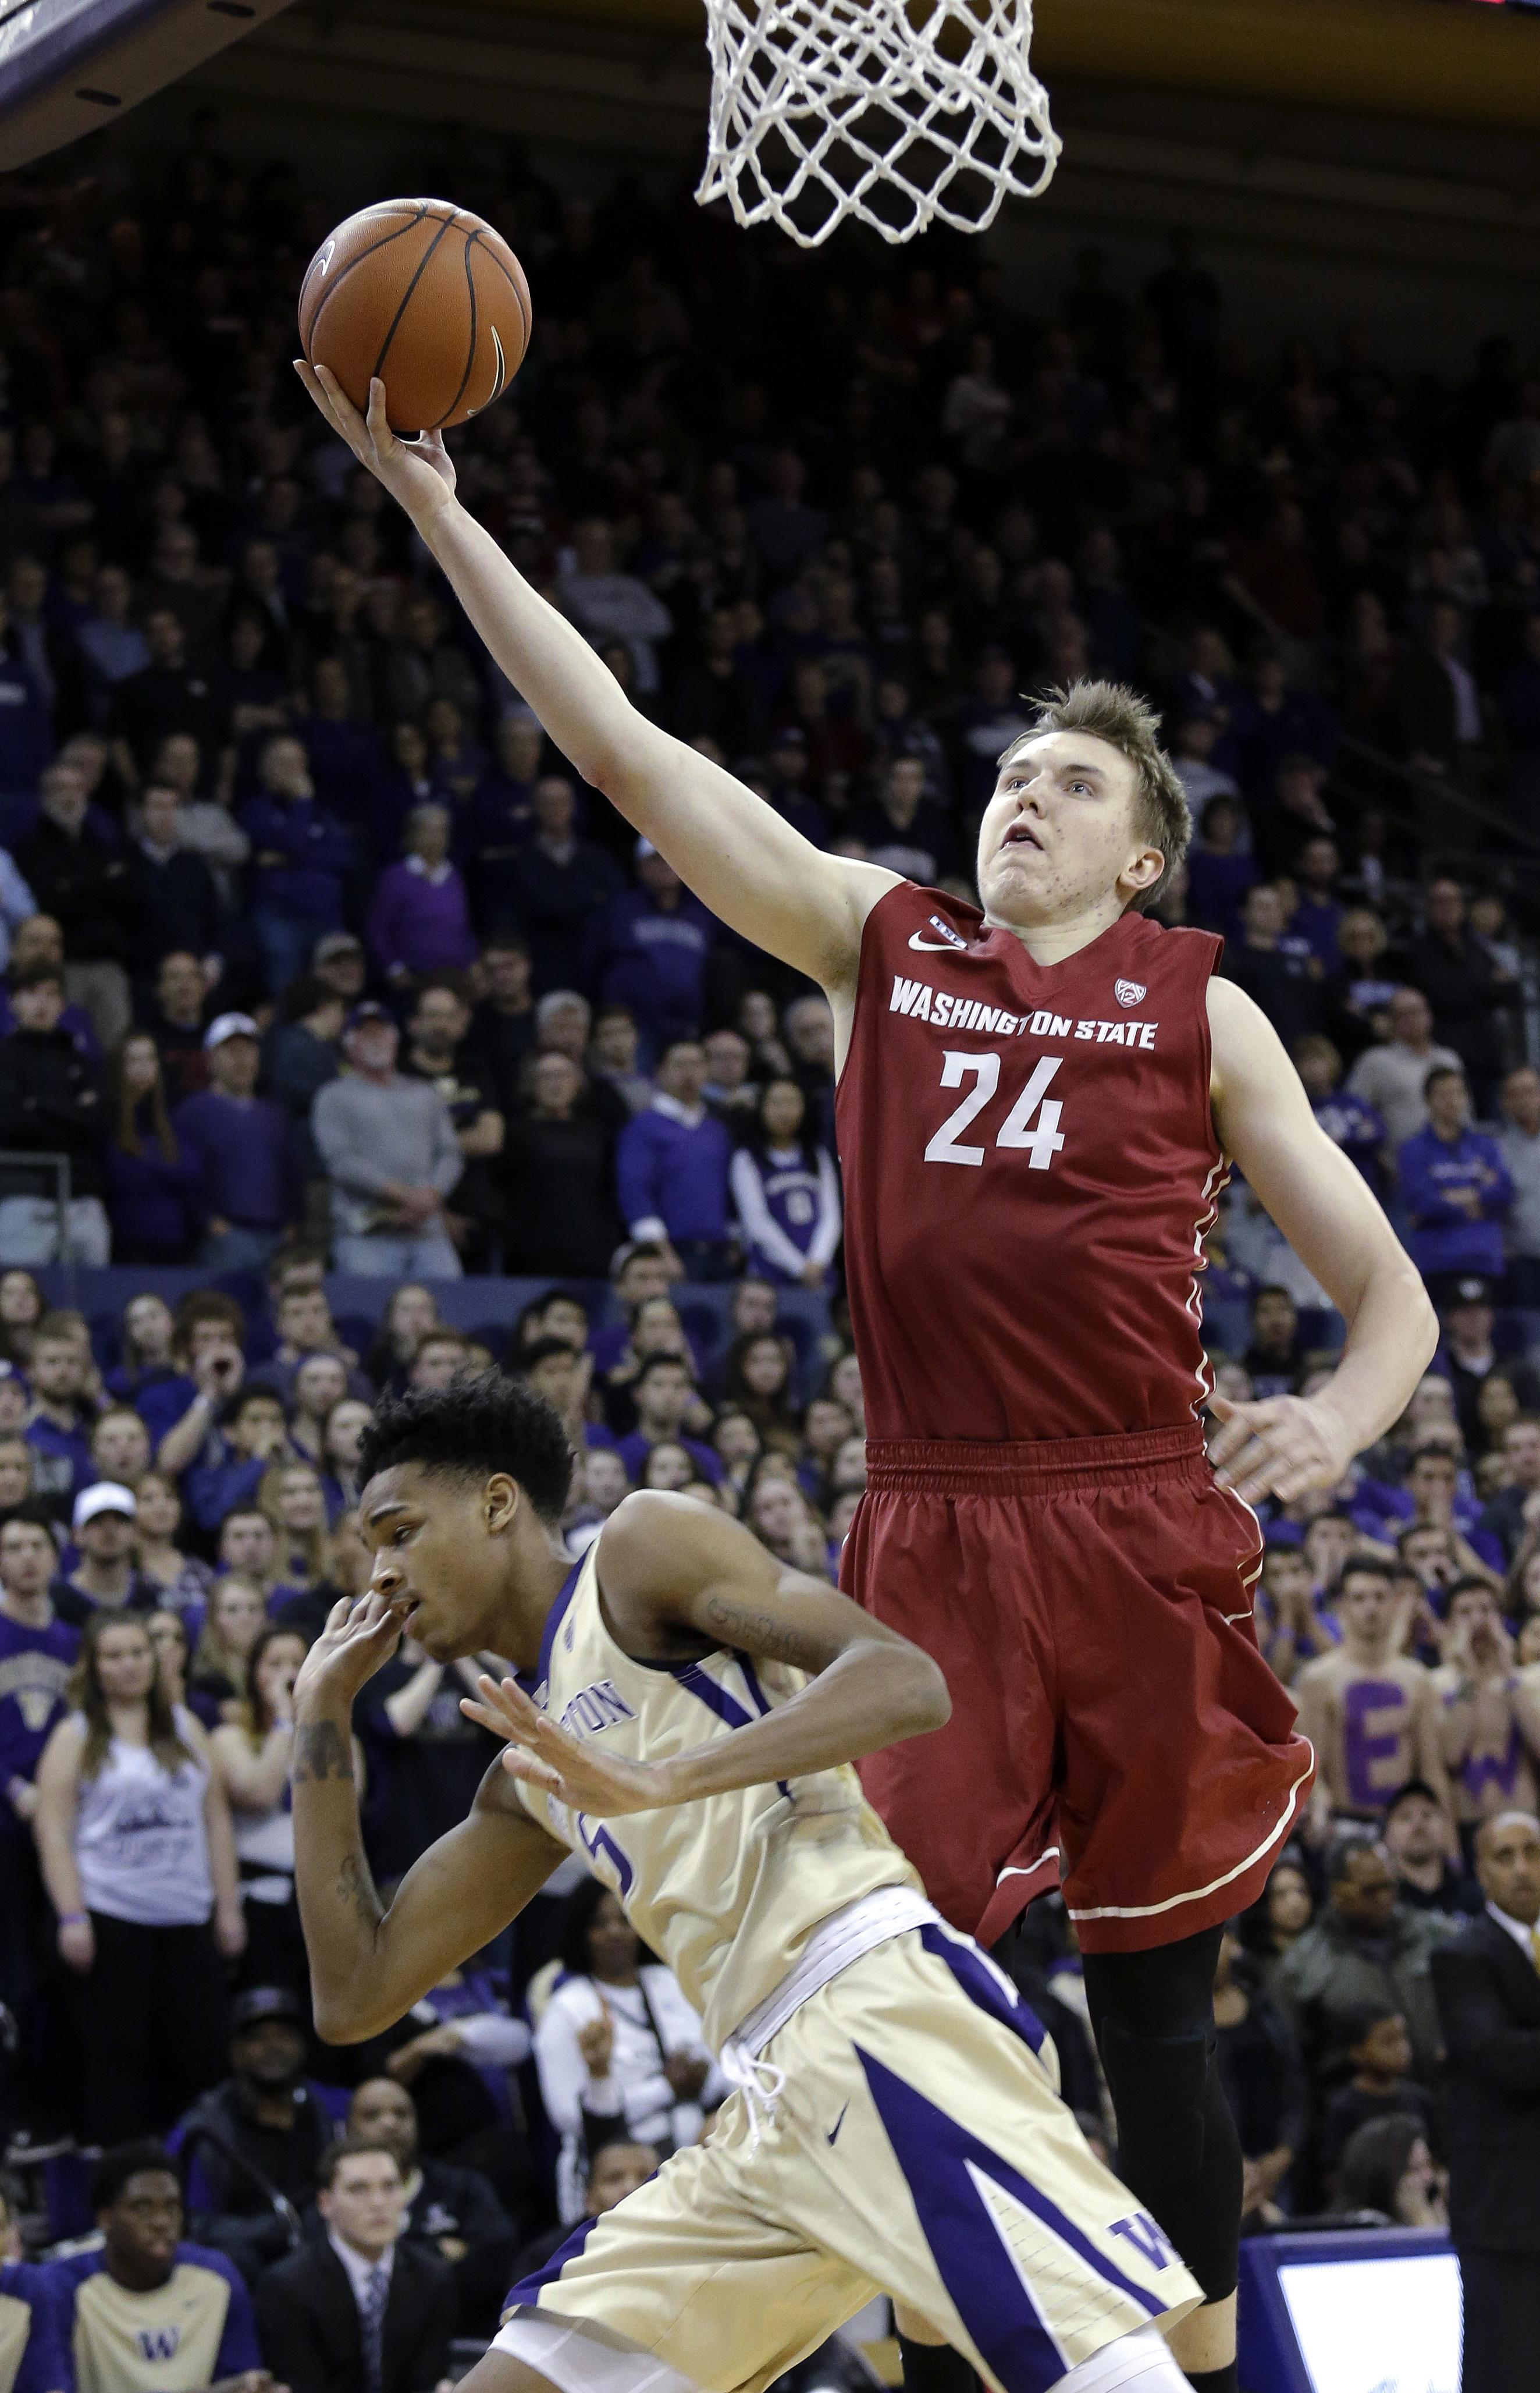 here is wsu's pac-12 men's basketball schedule | the spokesman-review